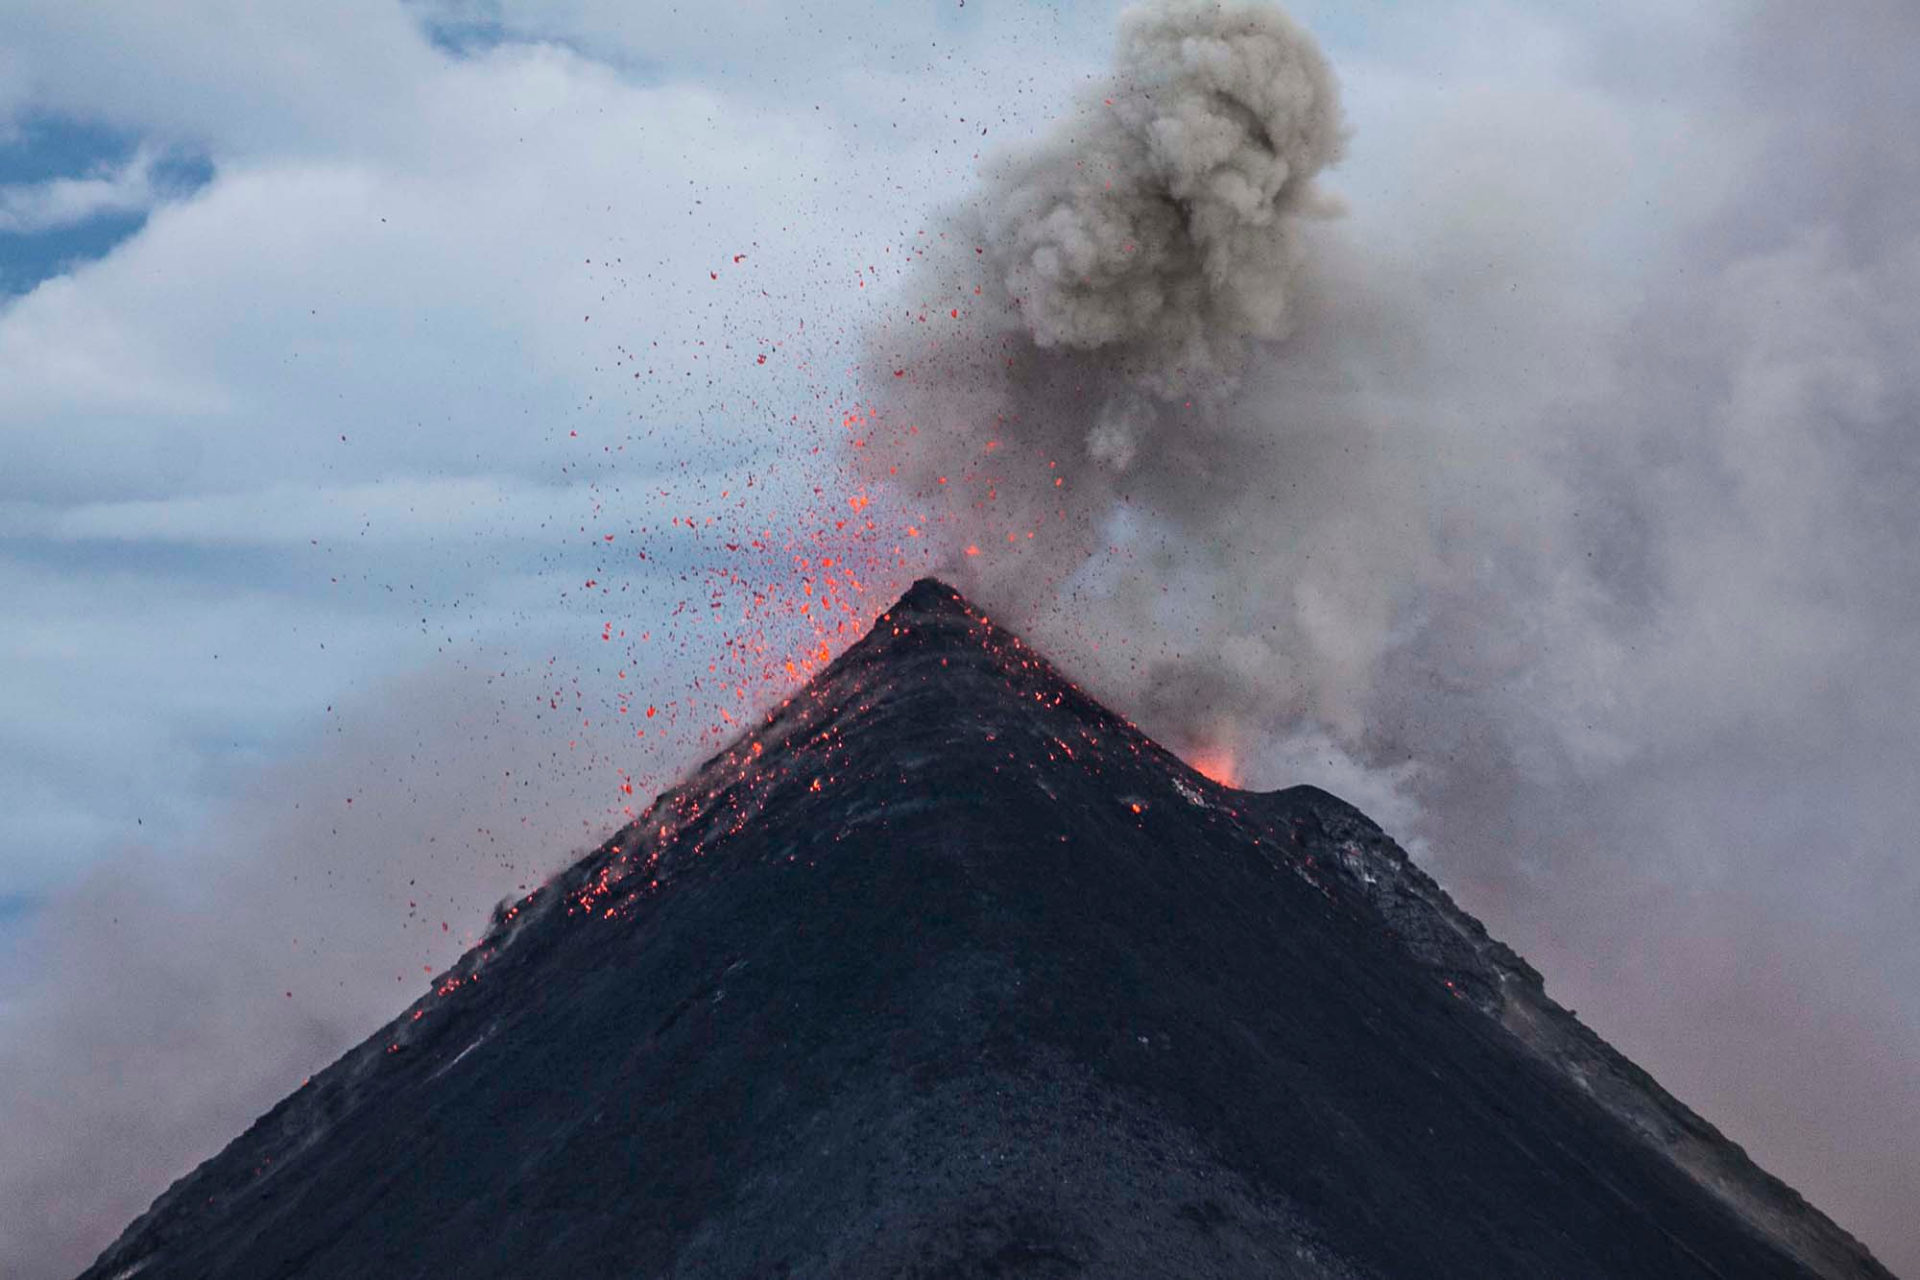 Volcano in the process of erupting